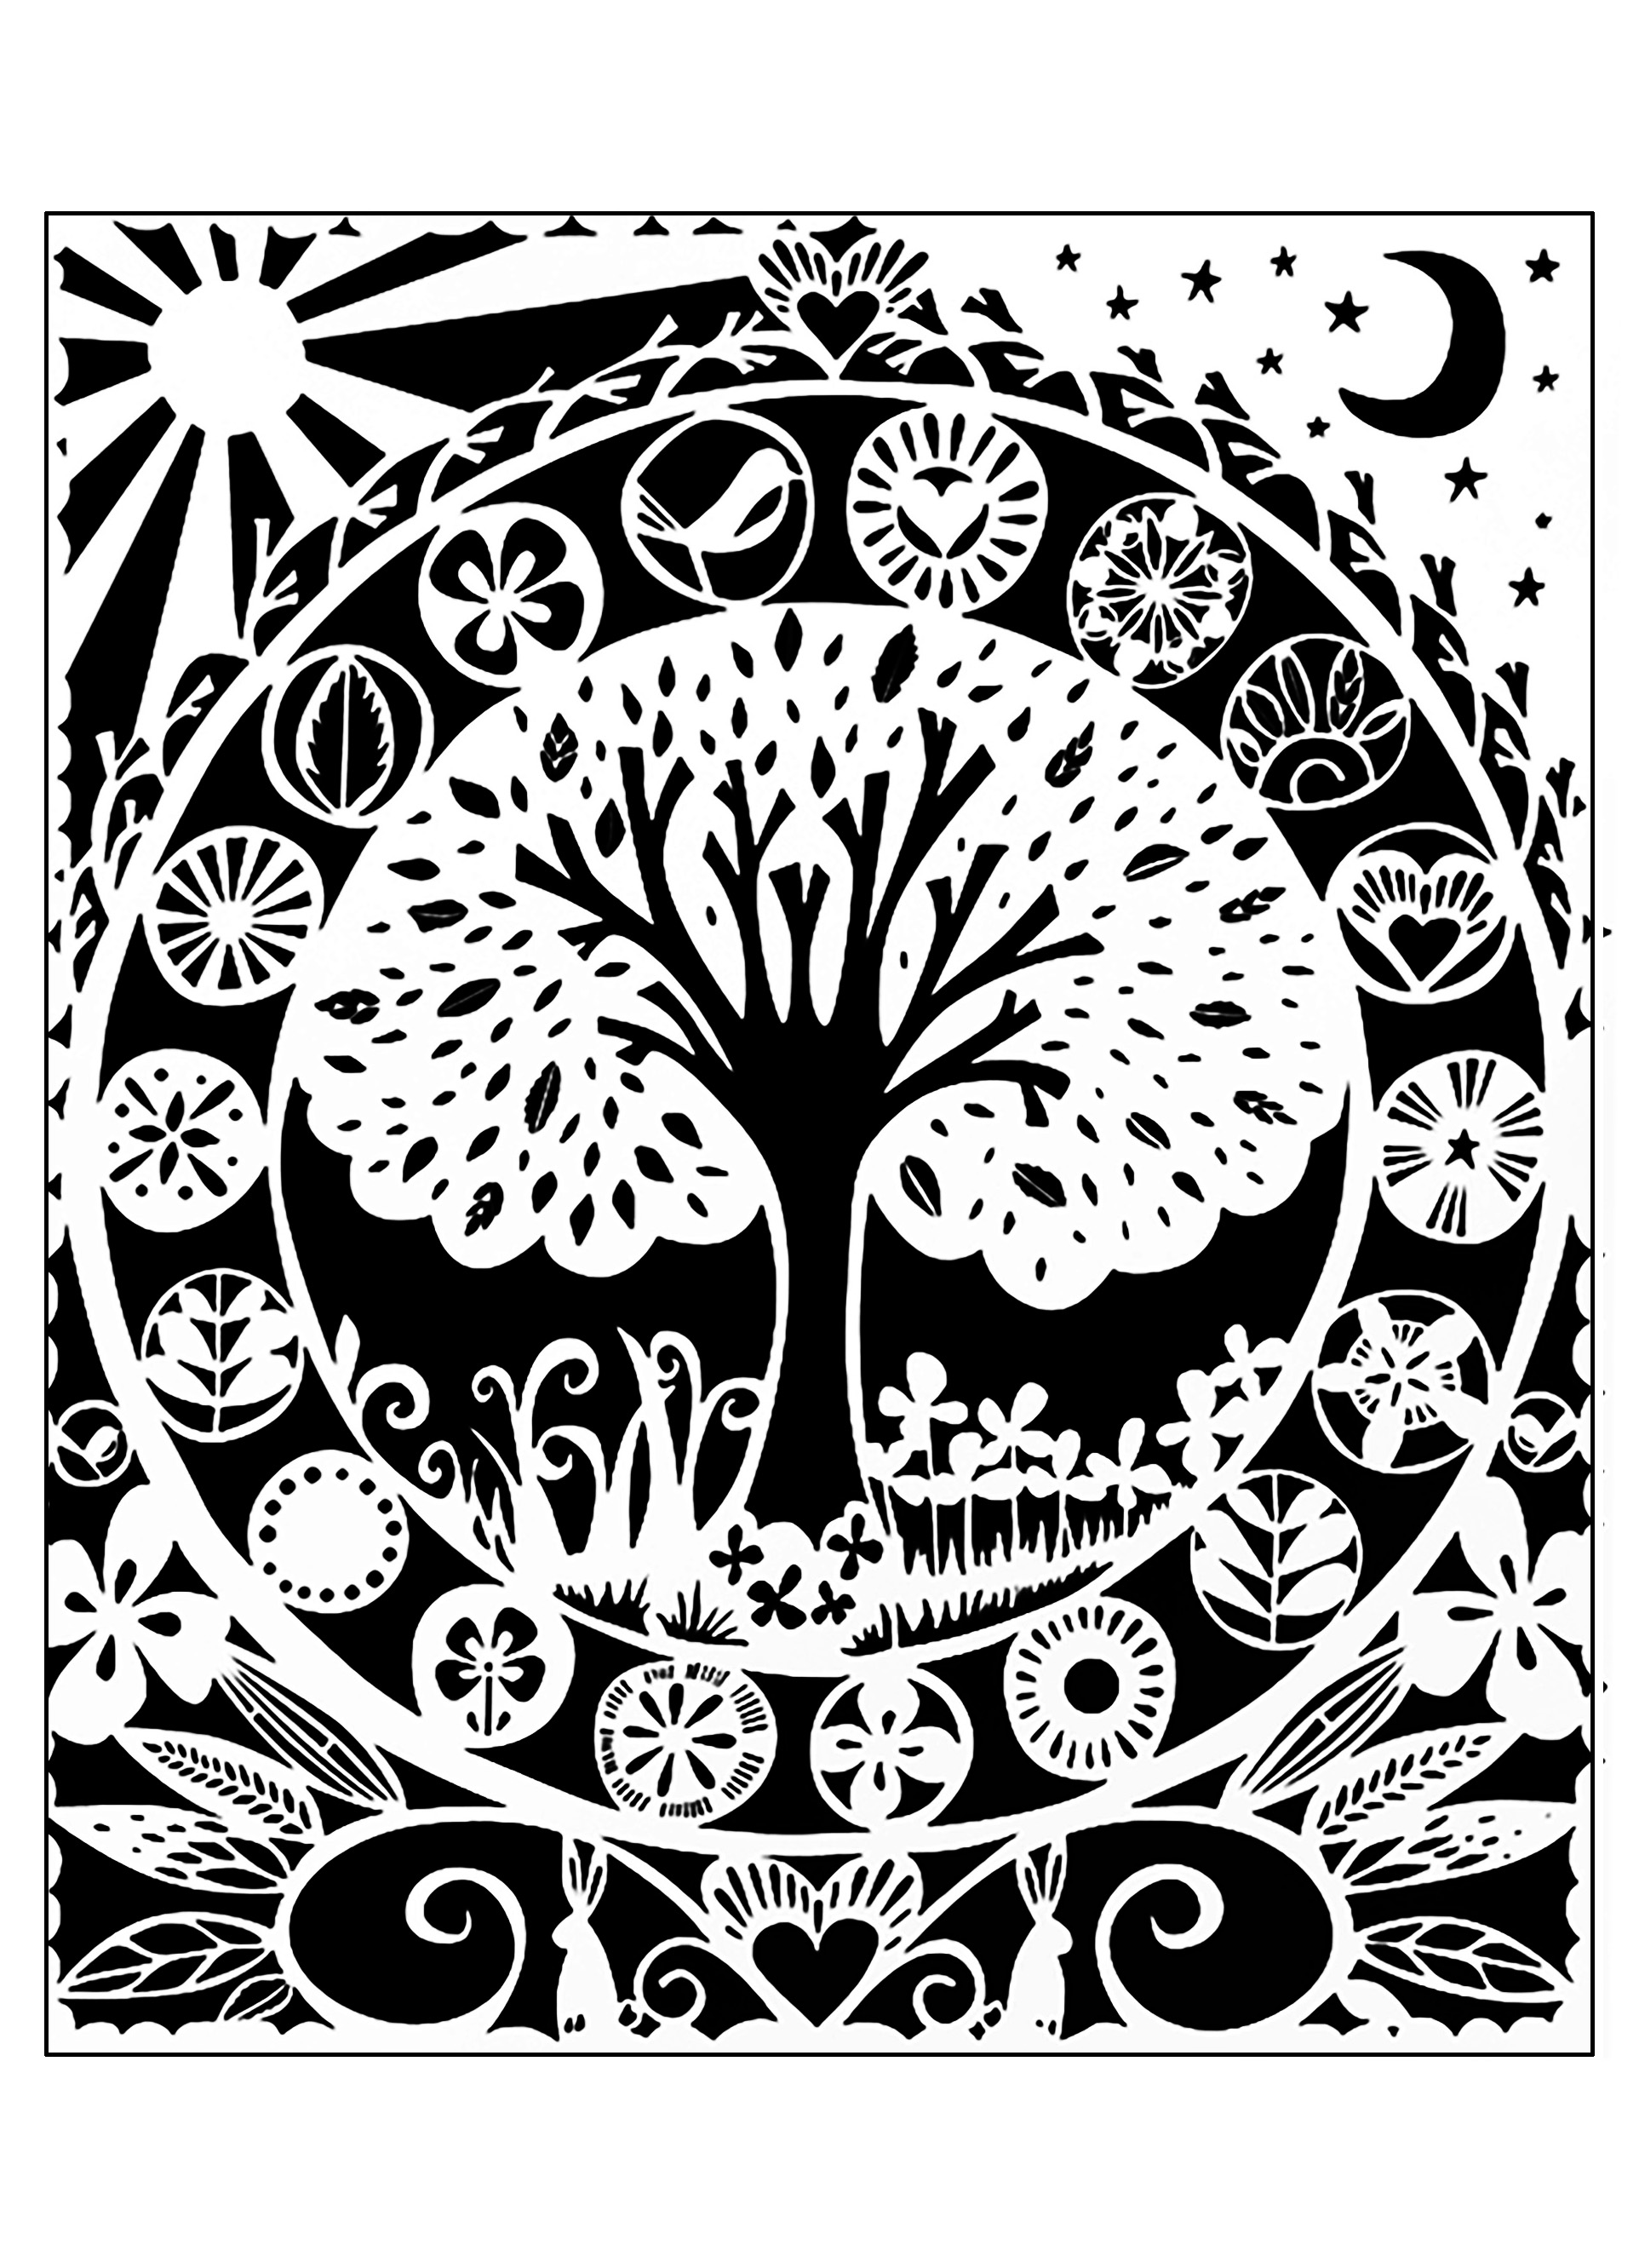 tree white black 2 flowers and vegetation coloring pages for